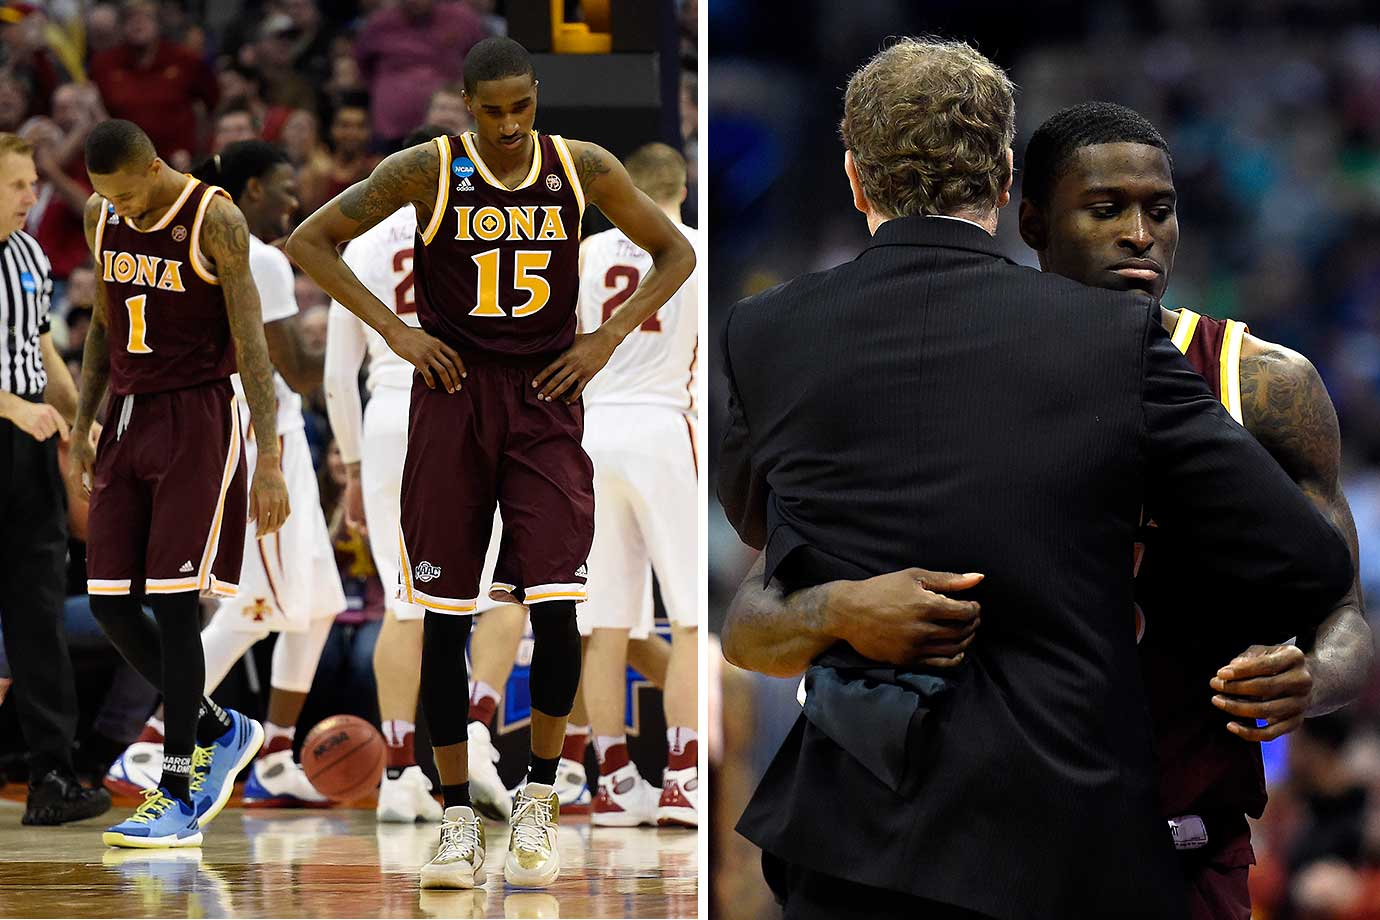 Isaiah Williams (1) and Deyshonee Much (15) react to falling behind big to Iowa State, followed by a sad A.J. English hugging coach Tim Cluess late in the 94-81 loss.